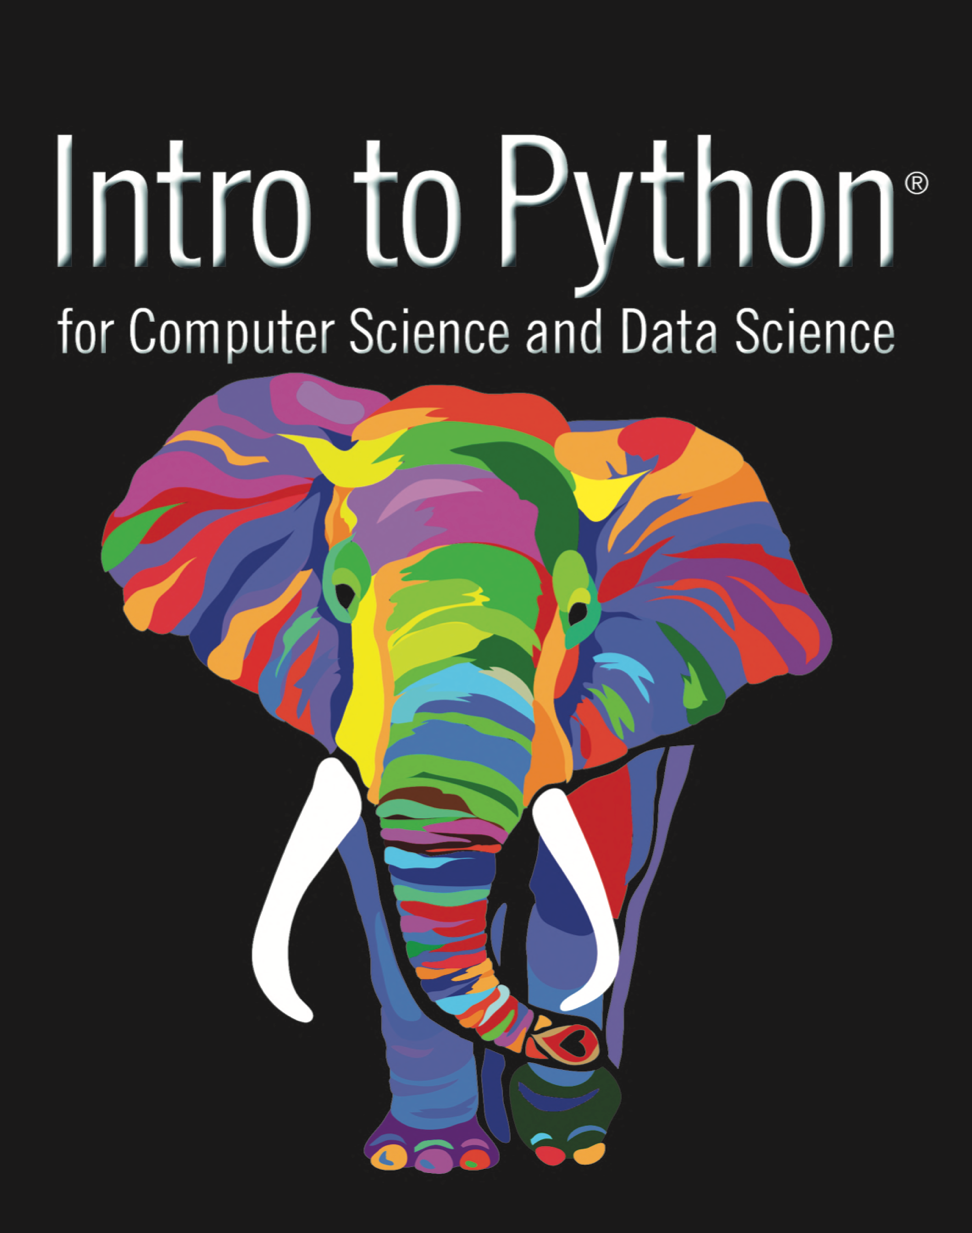 Intro to Python for Computer Science and Data Science at Python.Engineering